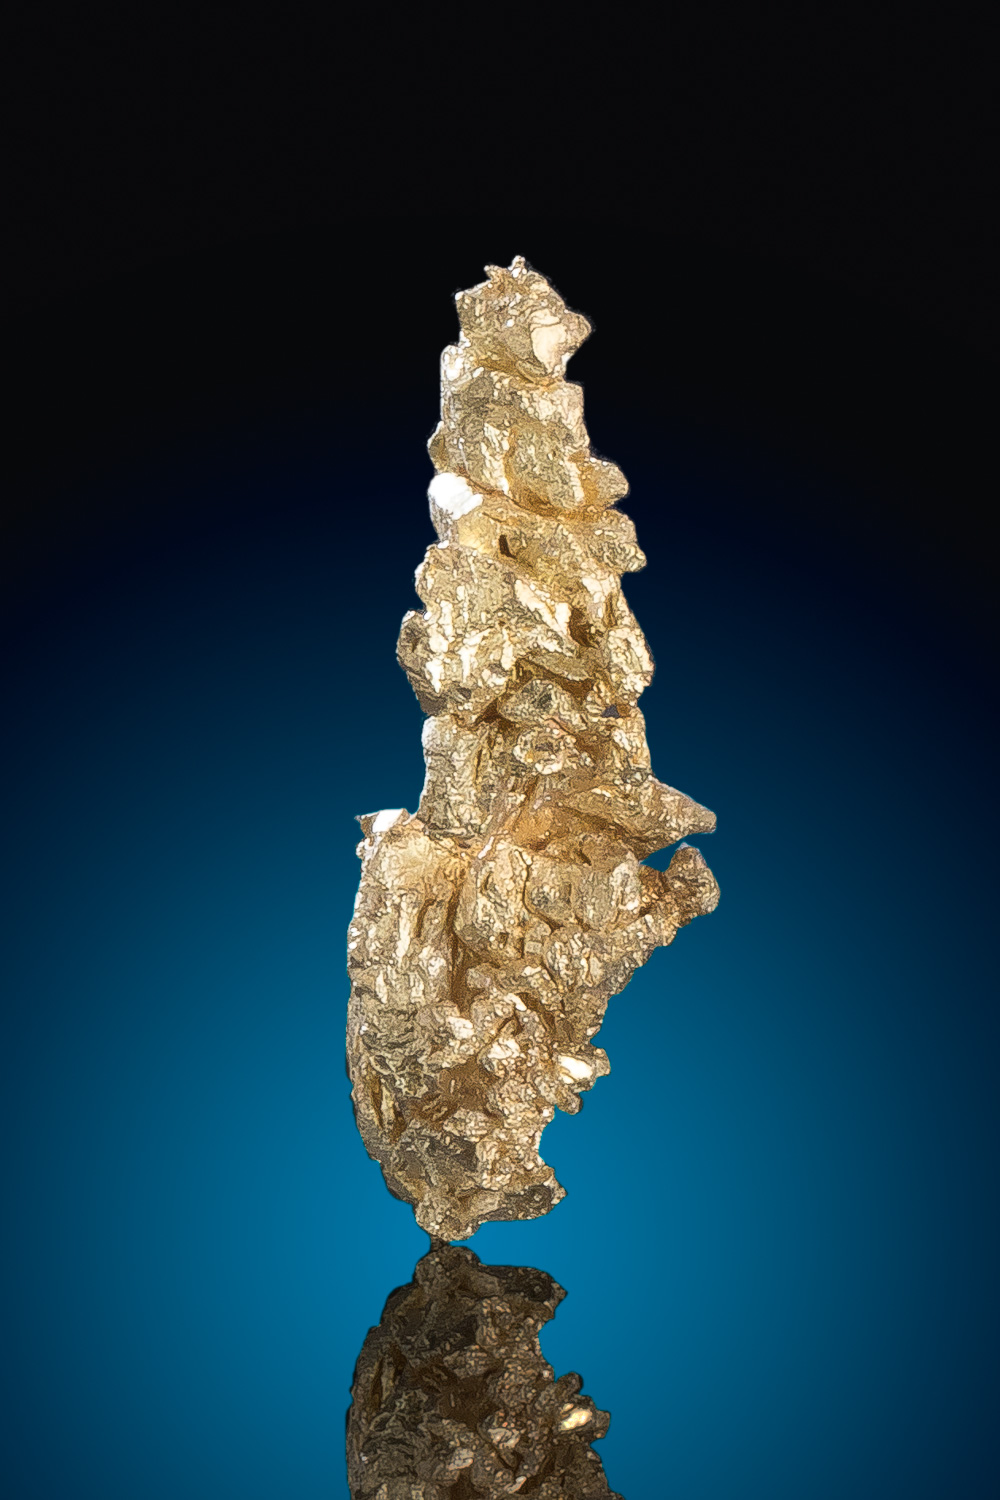 Long Brilliand Gold Nugget Crystal - Round Mountain Gold Mine